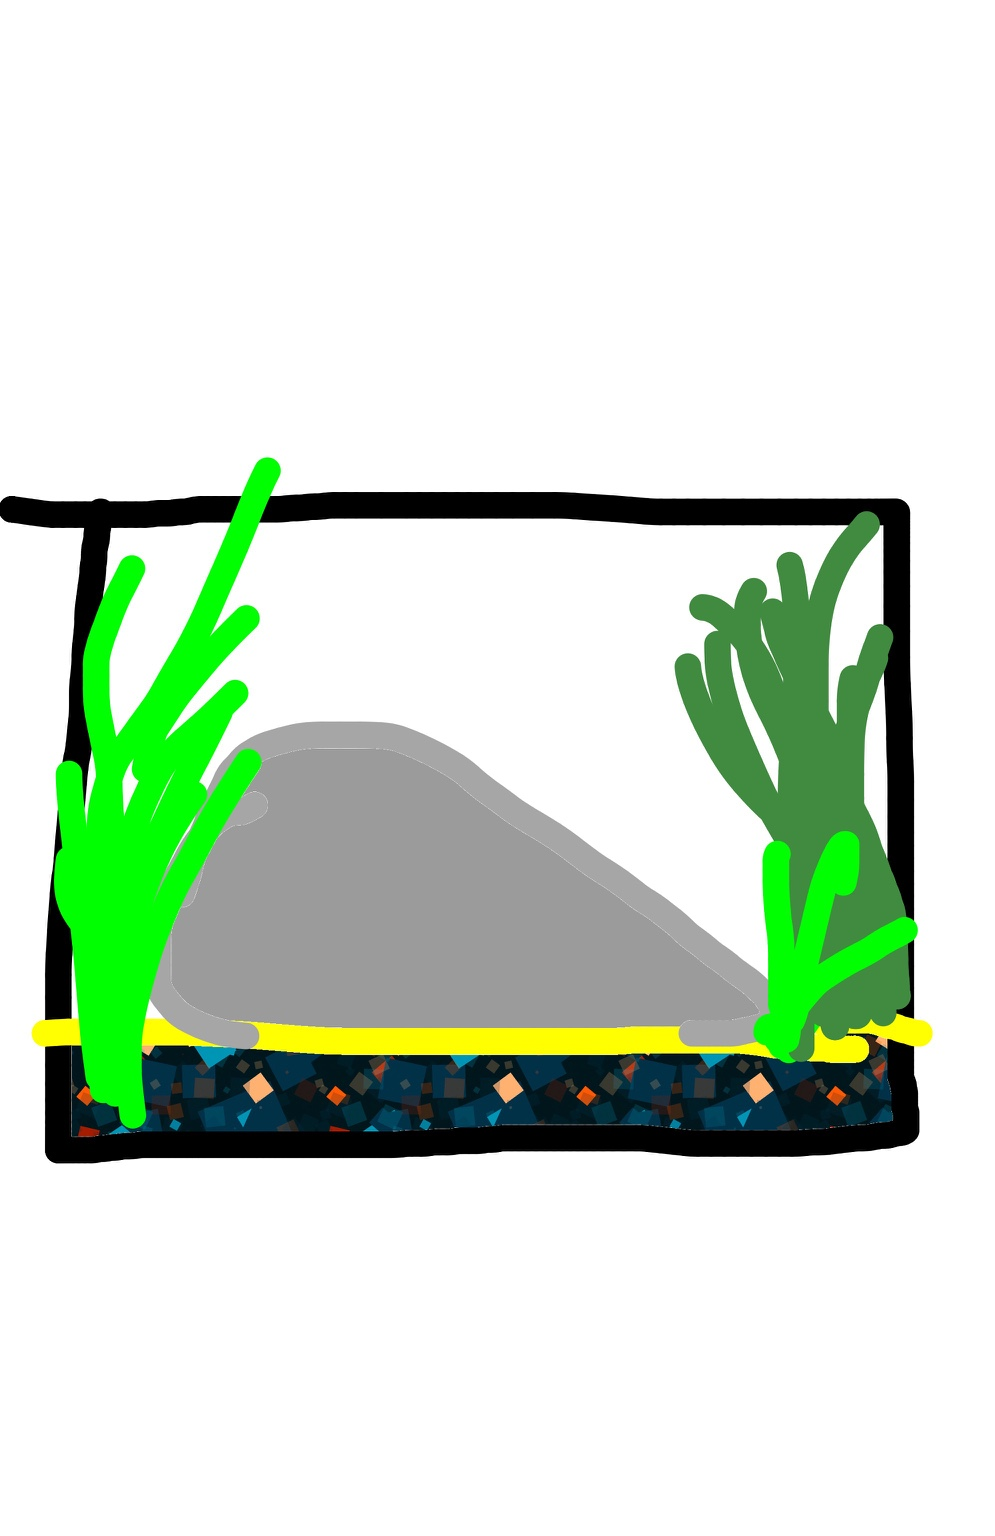 1 gallon tank design.